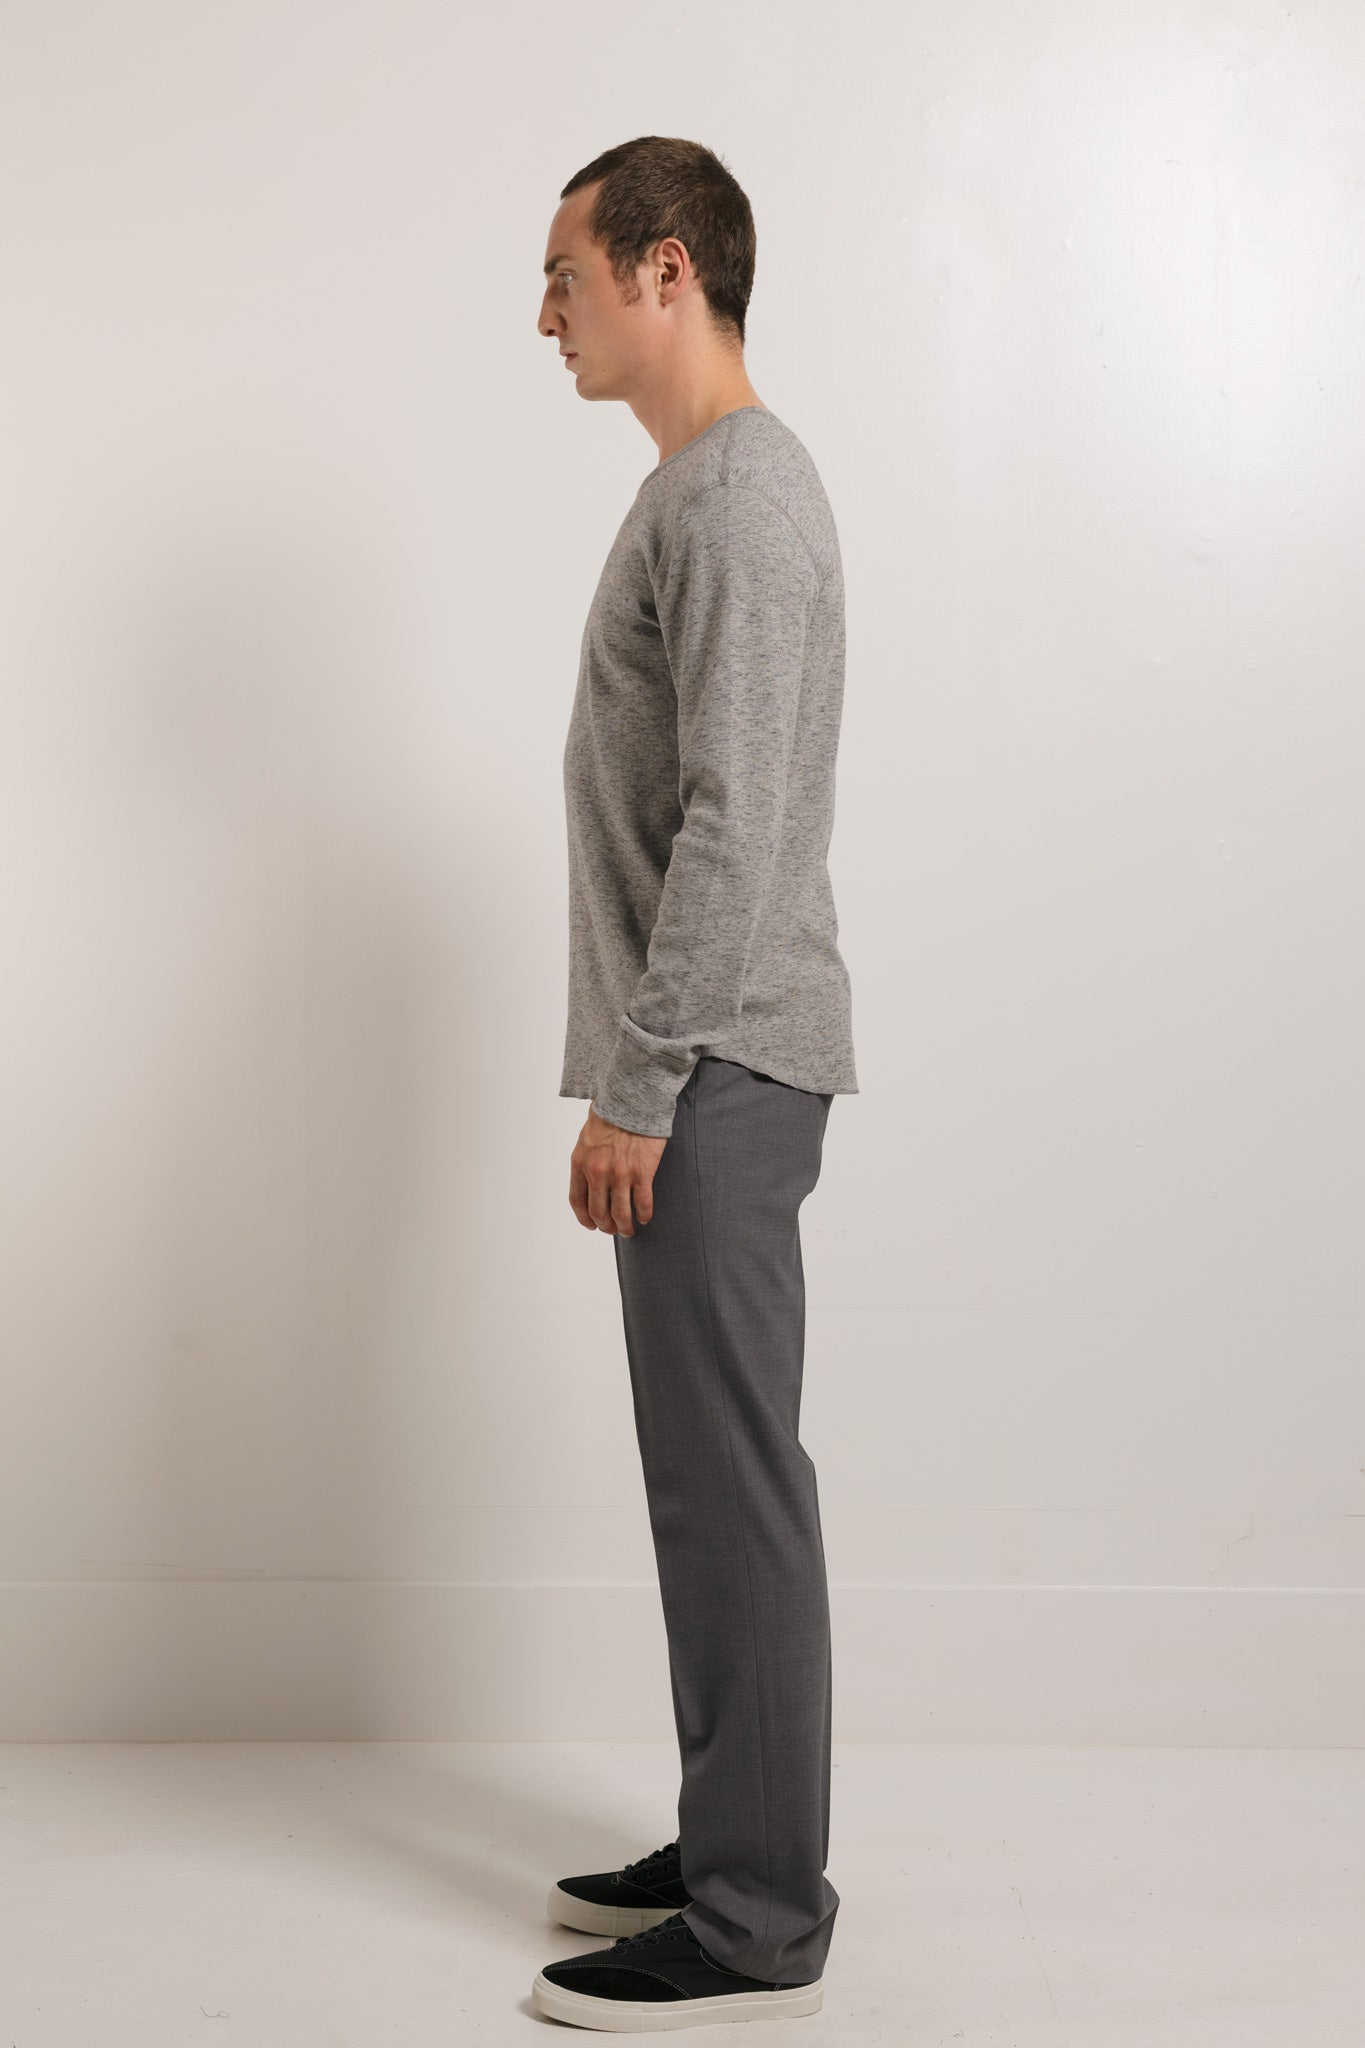 Slub 1x1 Long sleeve tee in Grey 003